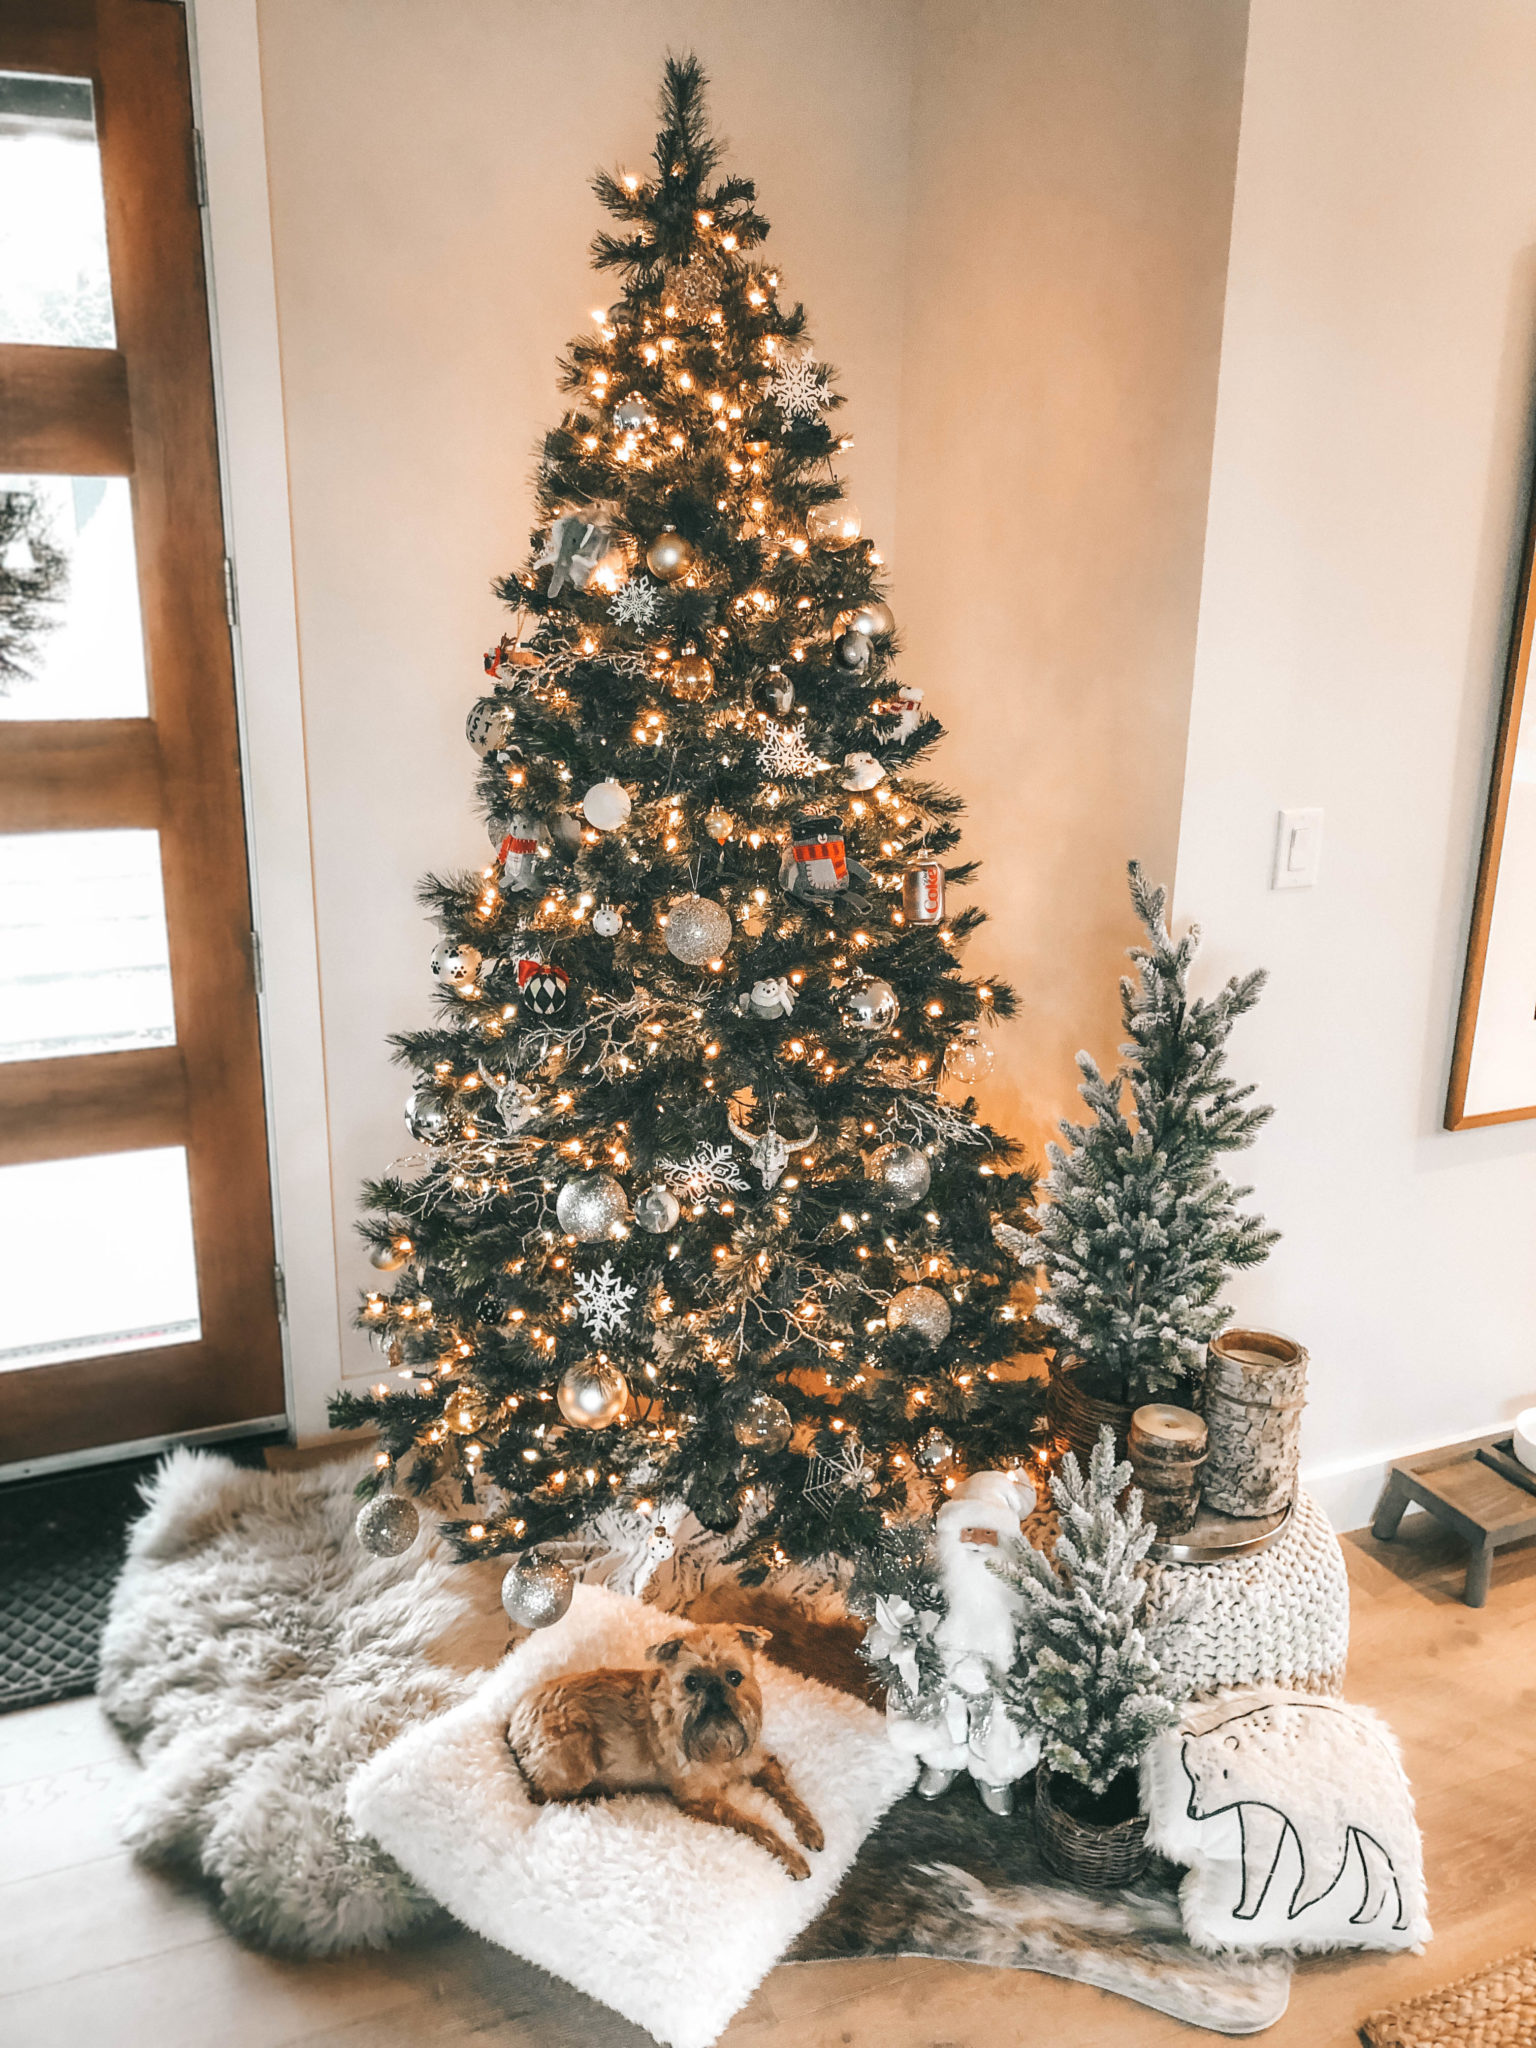 DTKAustin is sharing The Best Holiday Gift Ideas for Dogs & Their Owners. From dog beds to dog toys to dog treats this gift guide has everything you need to spoil your dog. || Dressed to Kill #petlovers #doglovers #petgiftguide #dtkaustin